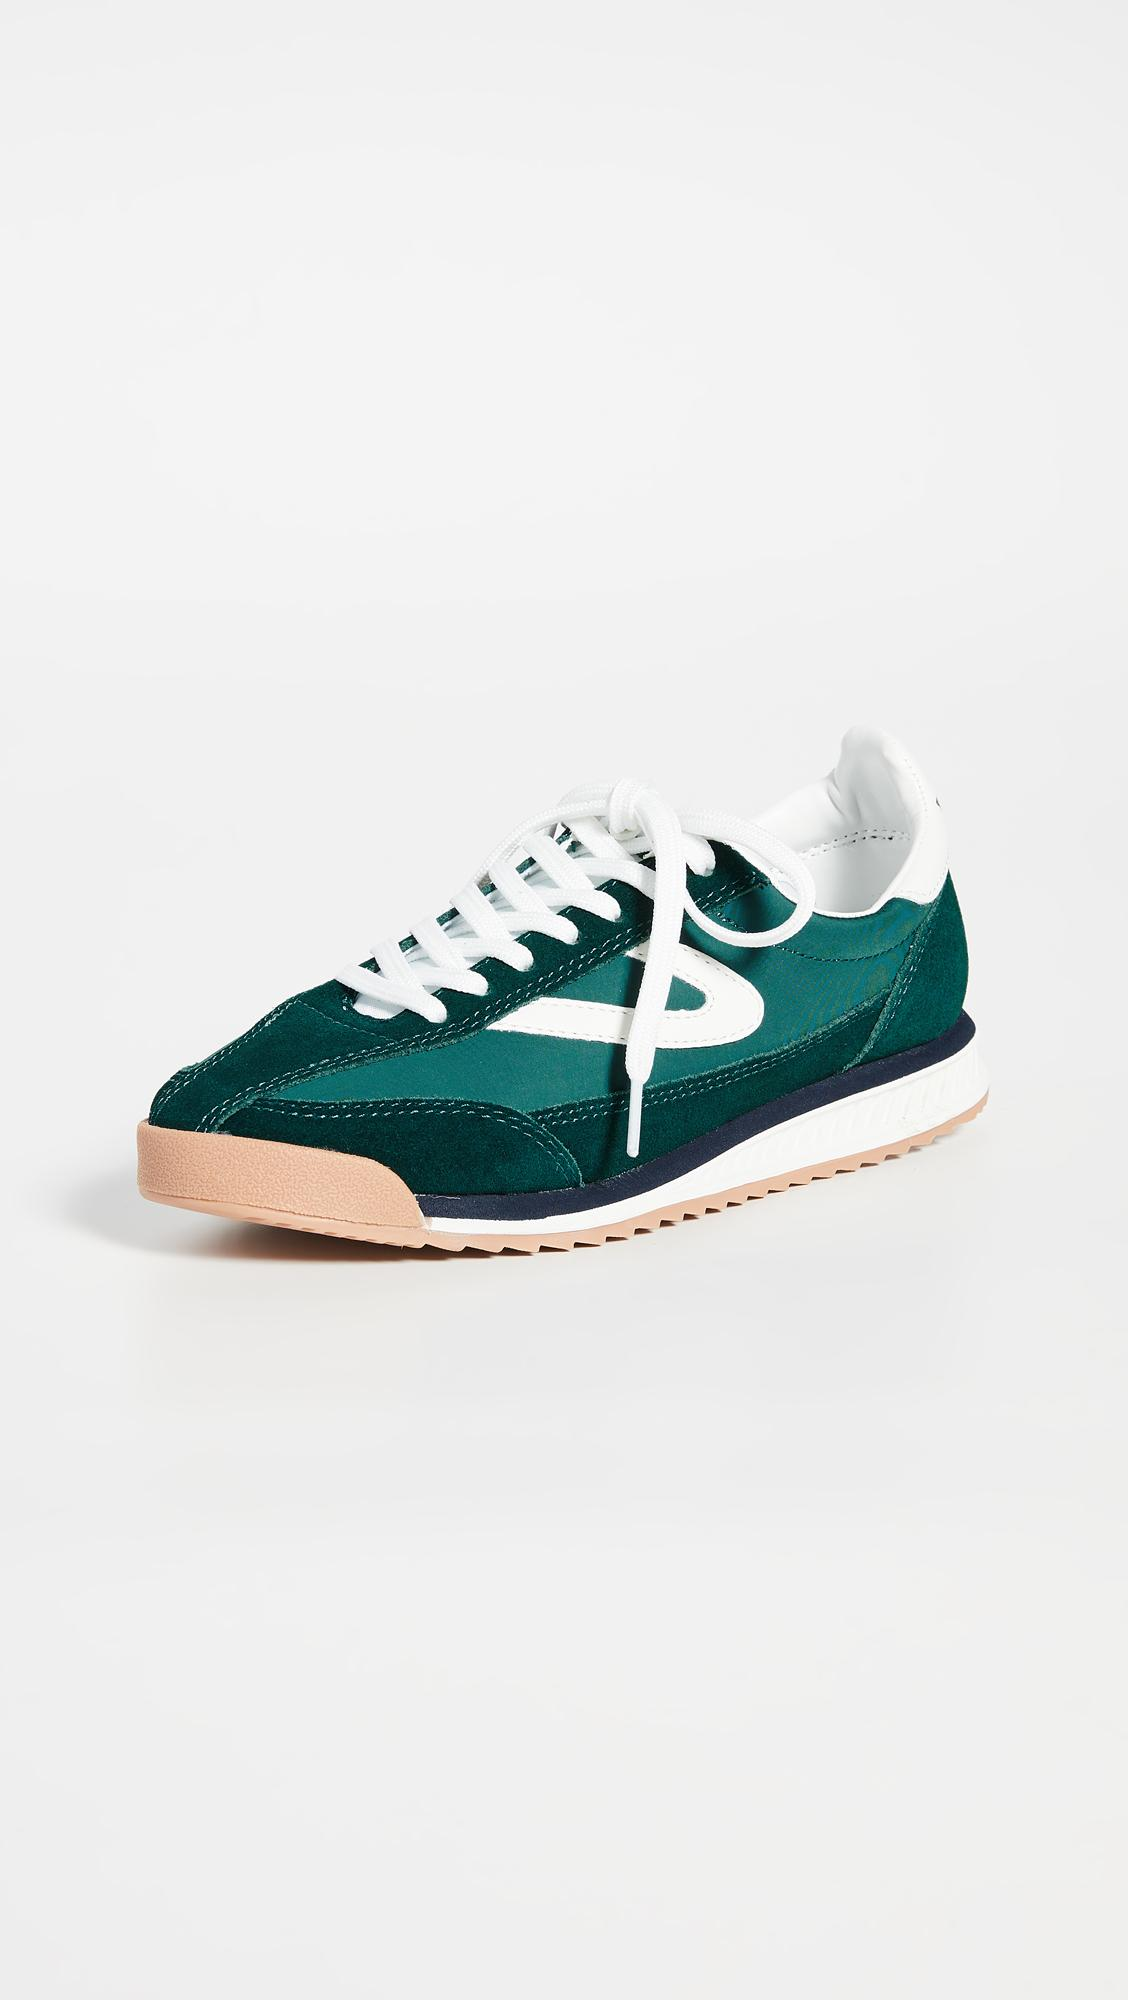 Tretorn Leather Rawlins 8 Sneakers in